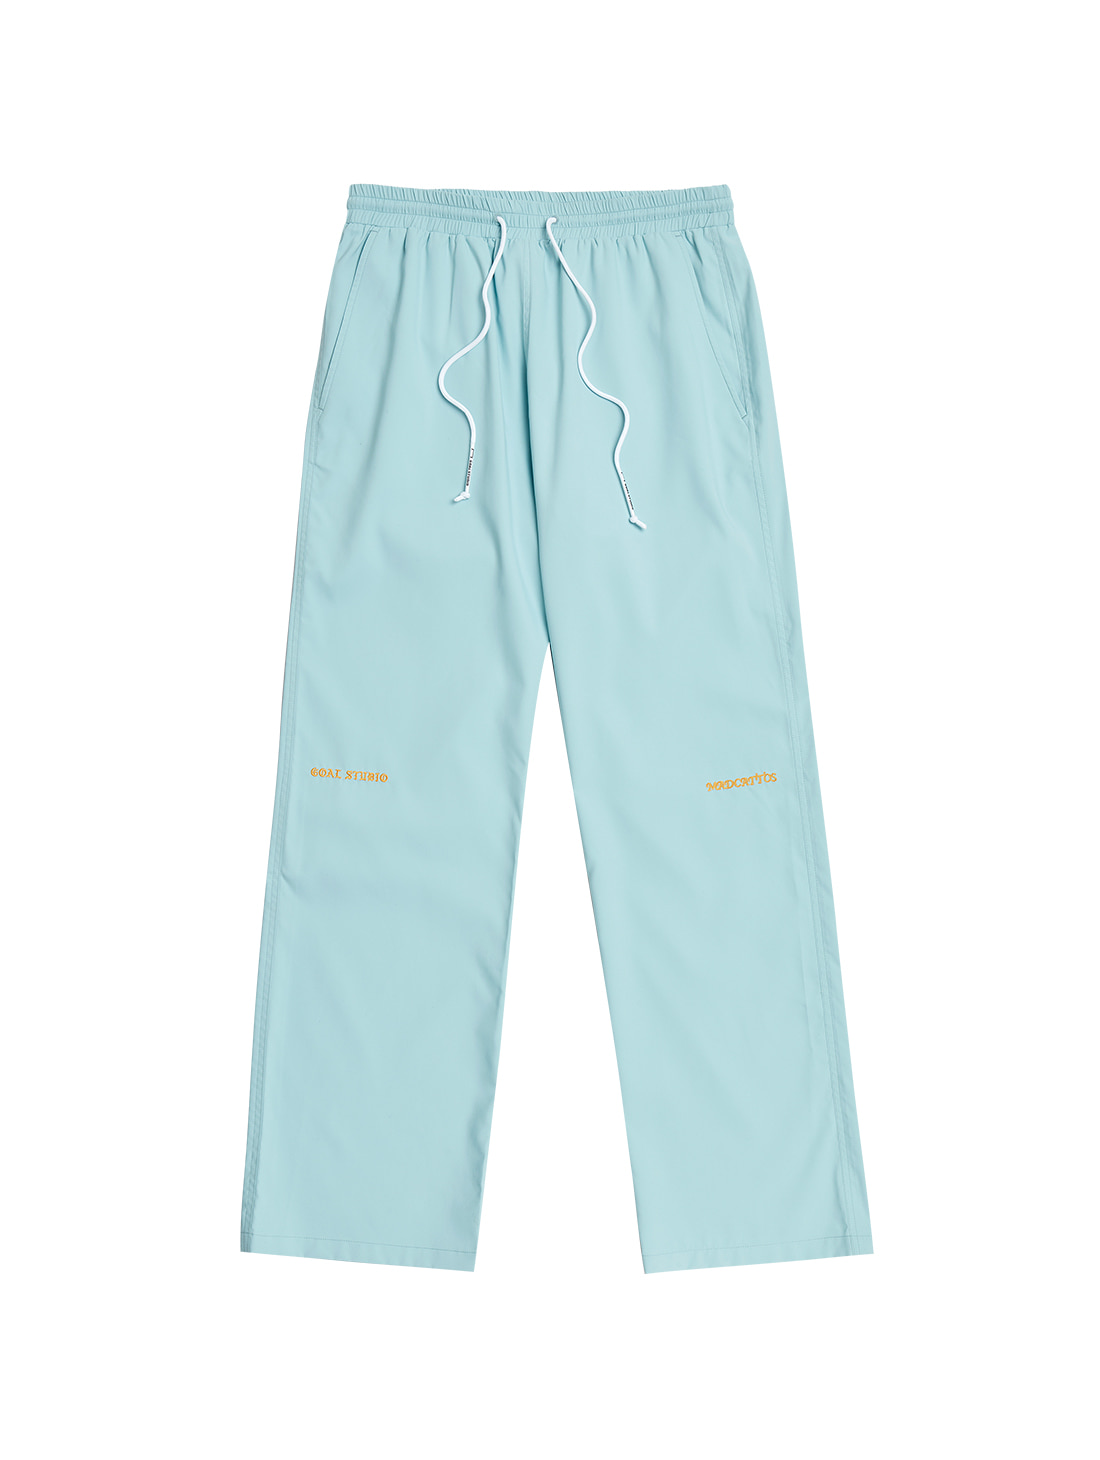 GOALSTUDIO MC WOVEN PANTS - LIGHT BLUE